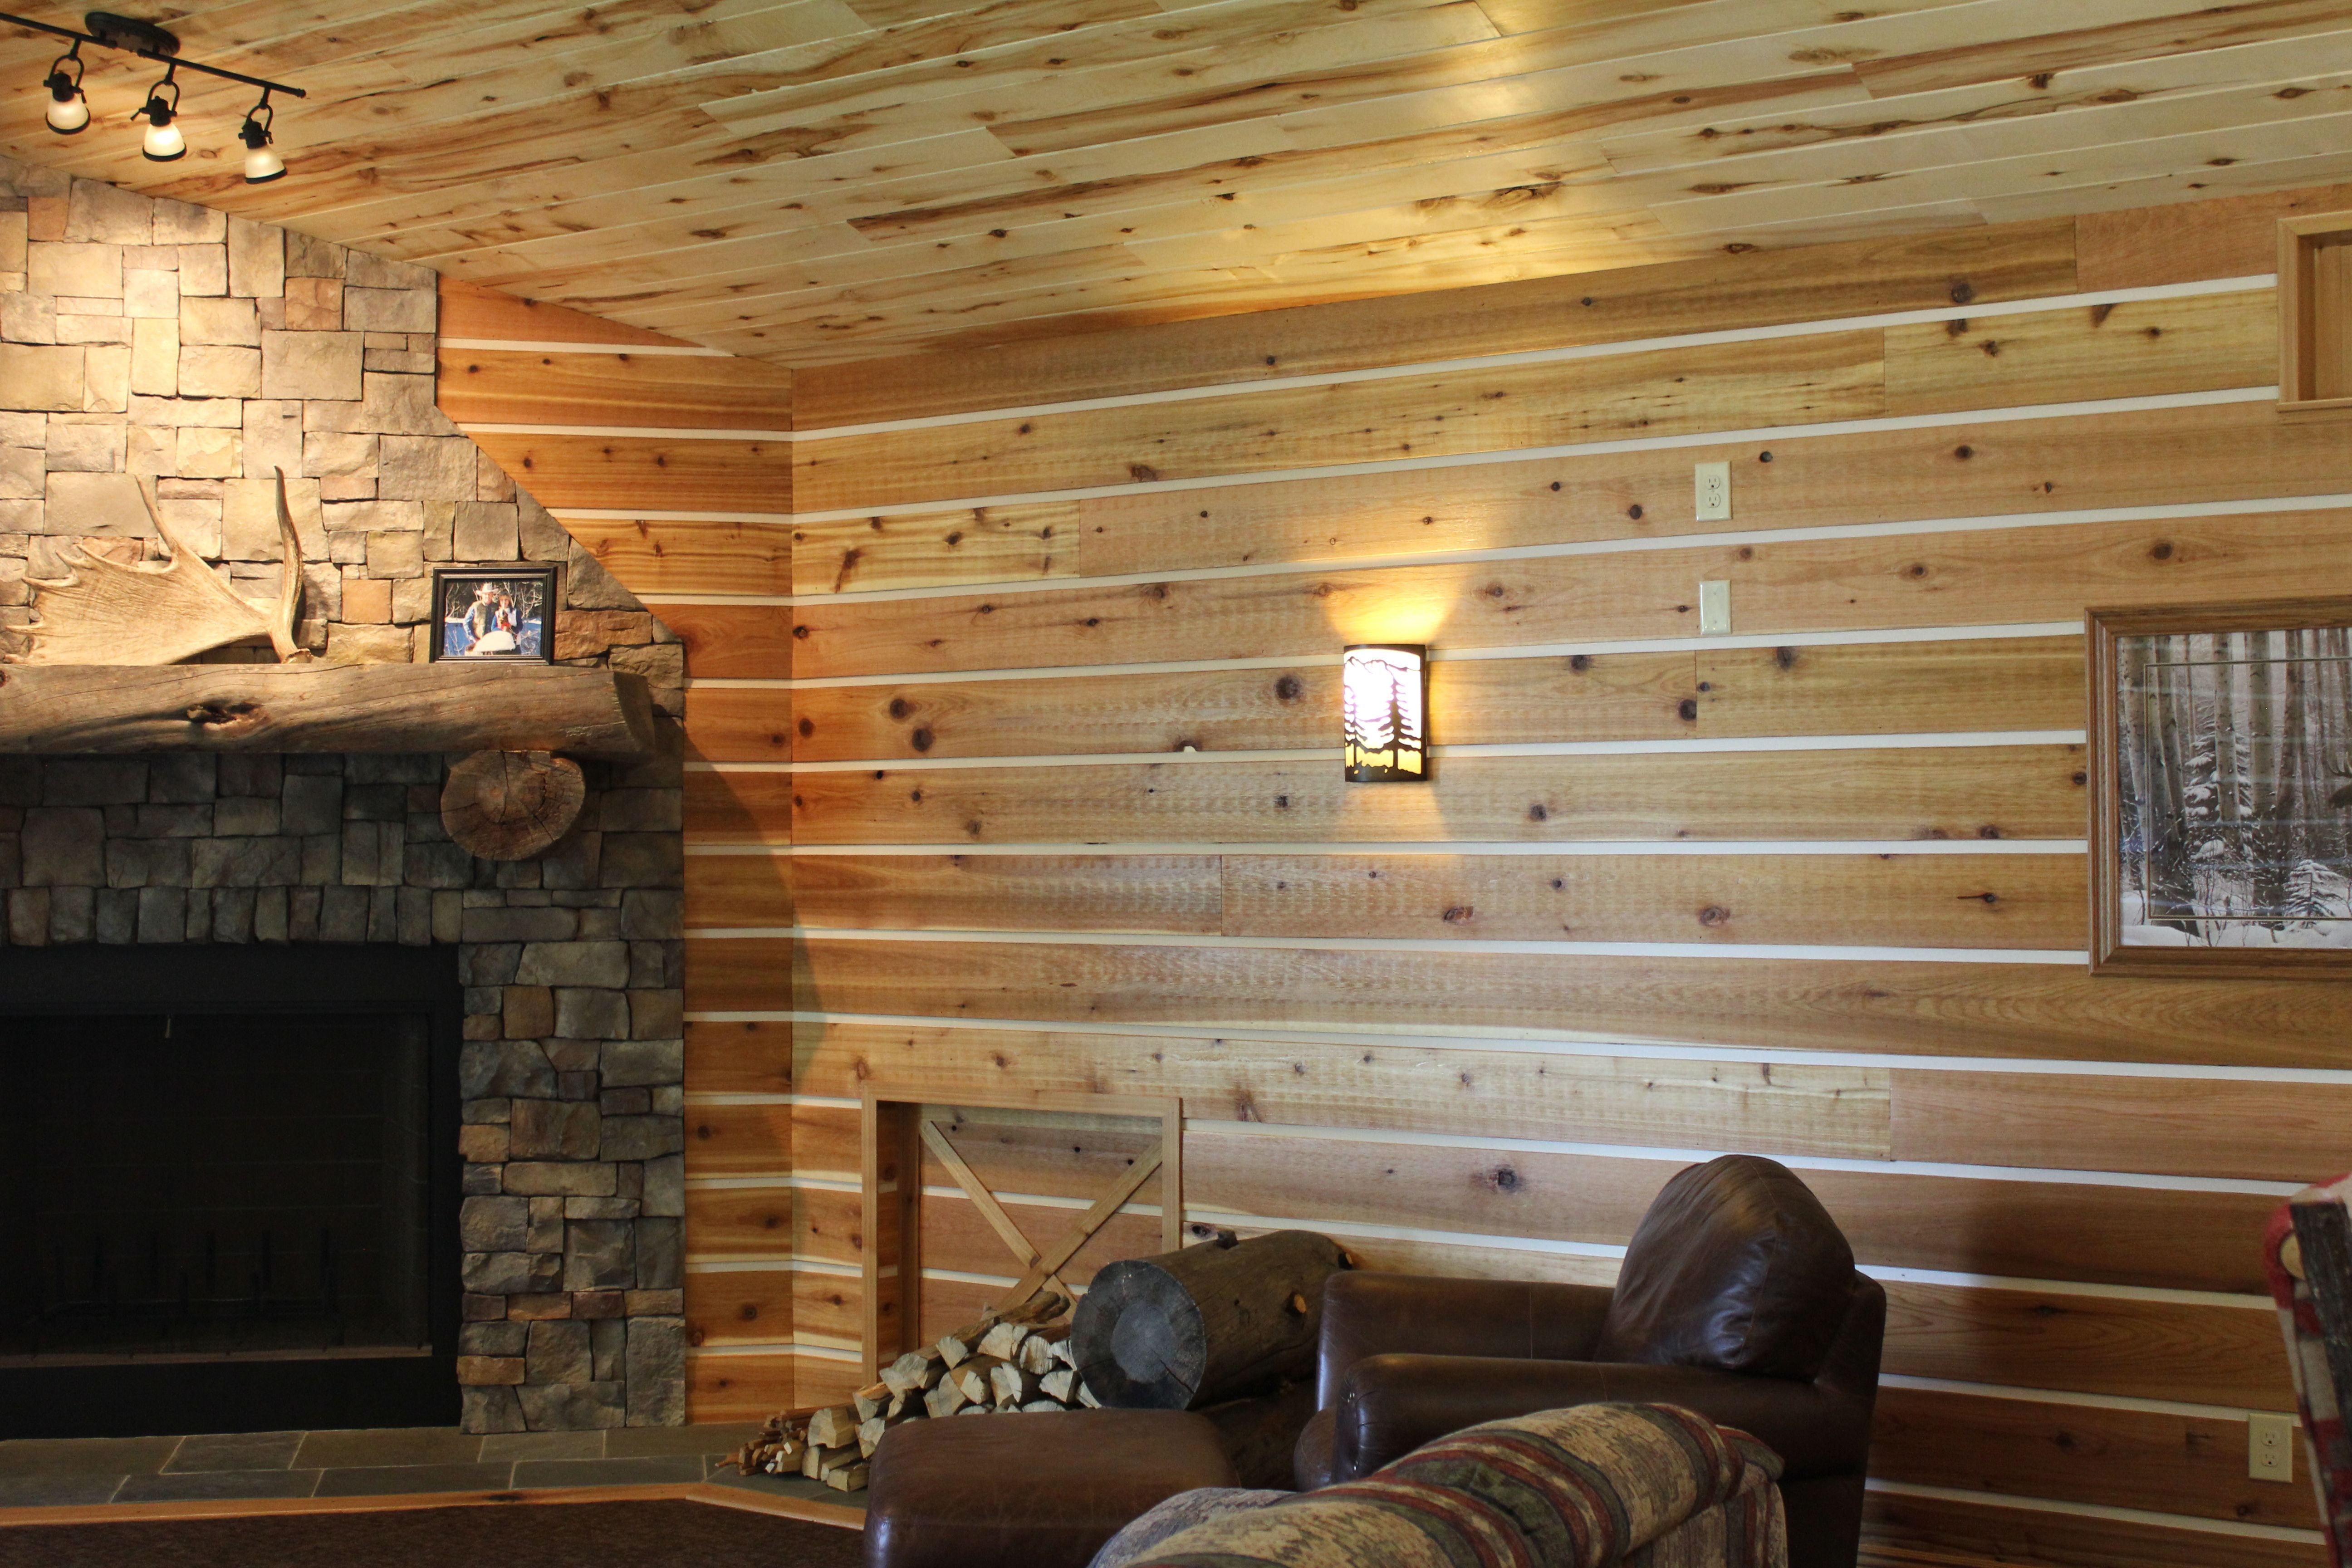 Channel Rustic Wood Siding: Check Out This Great Interior! Siding Using Our Channel